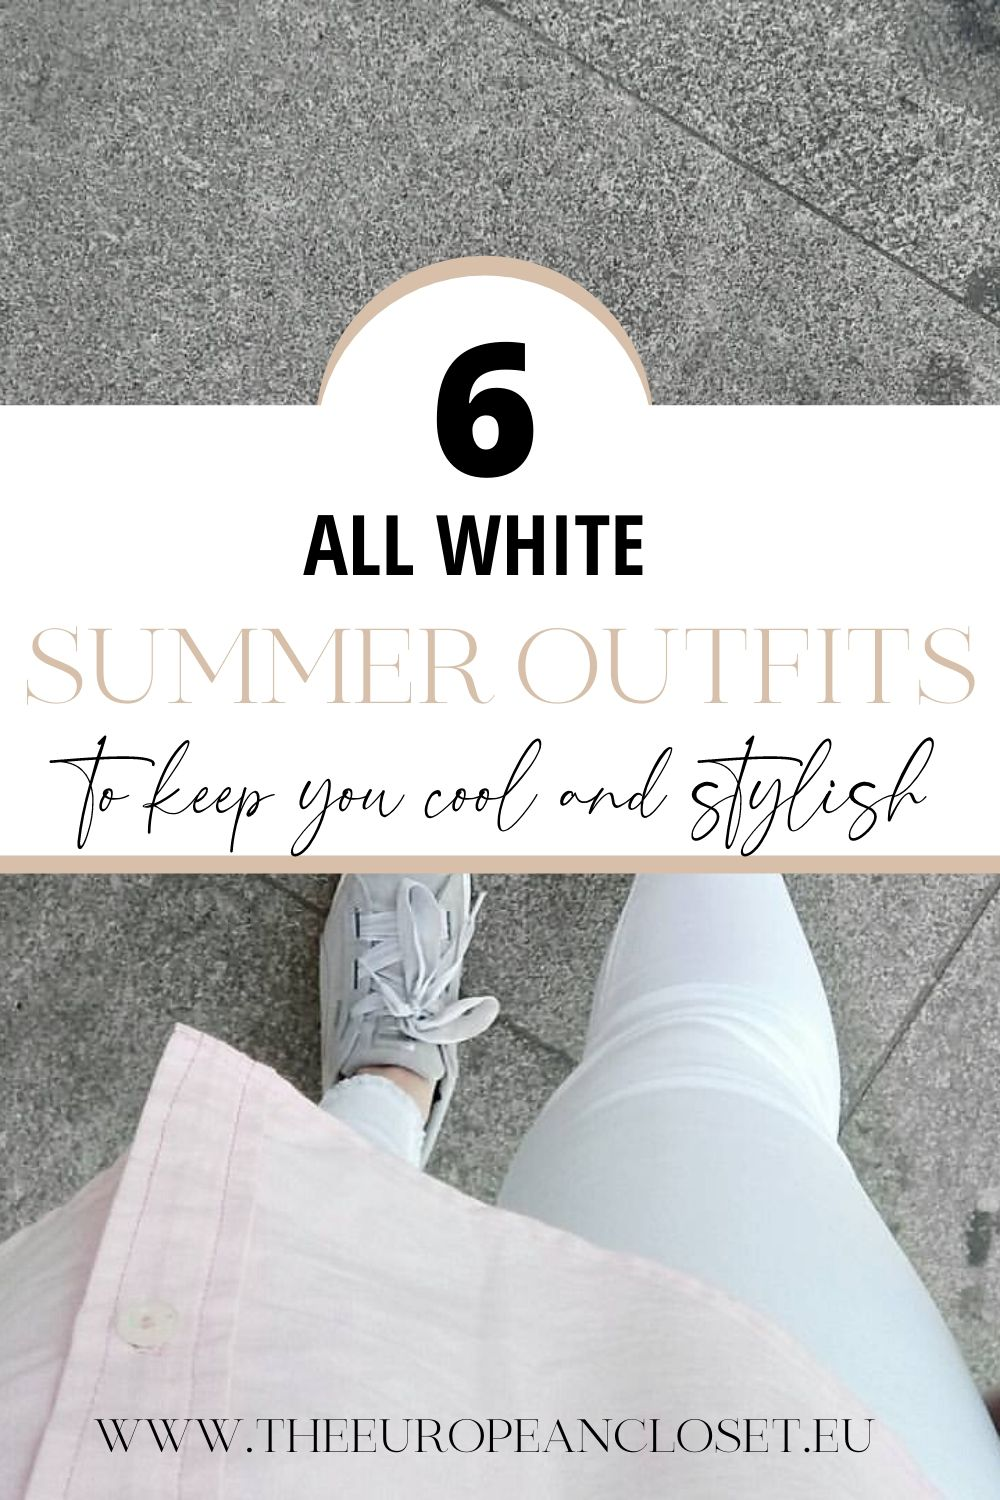 For today's post, I decided to gather six different all-white outfits you can easily recreate. These outfits are perfect for summer: they are lightweight, flowy, white and, most of all, comfortable.